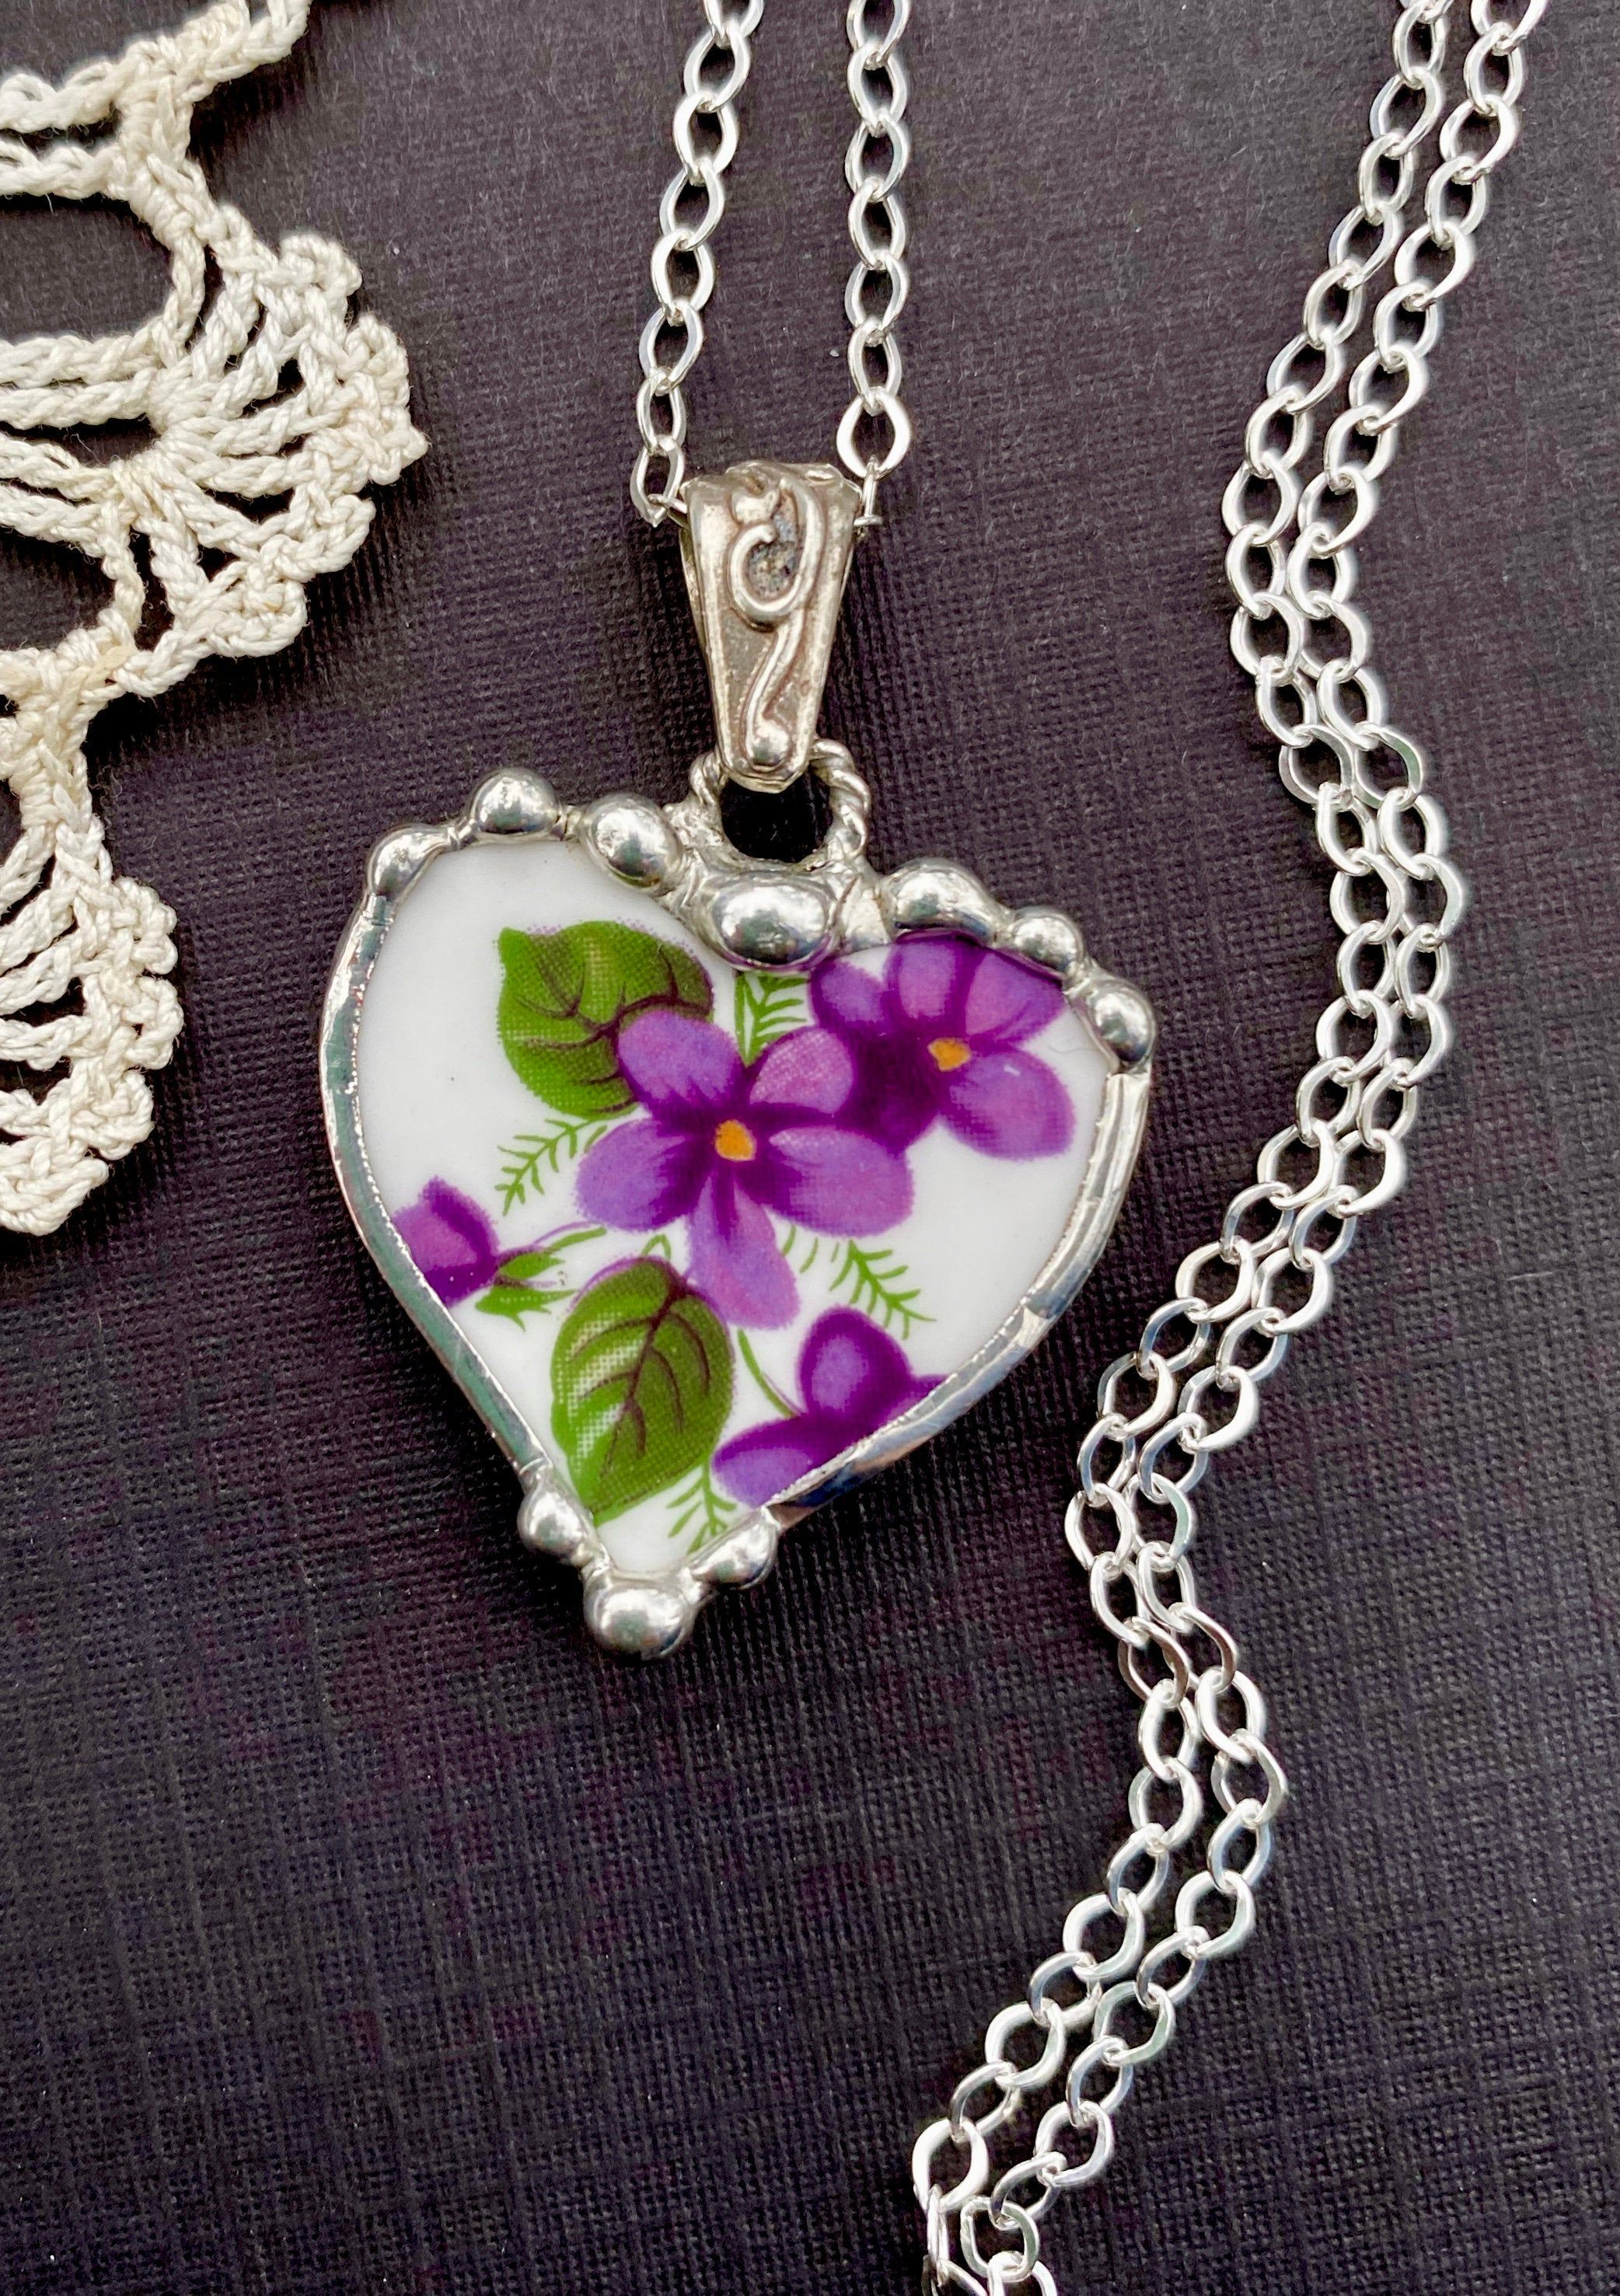 Necklace, Broken China Jewelry, Broken China Necklace